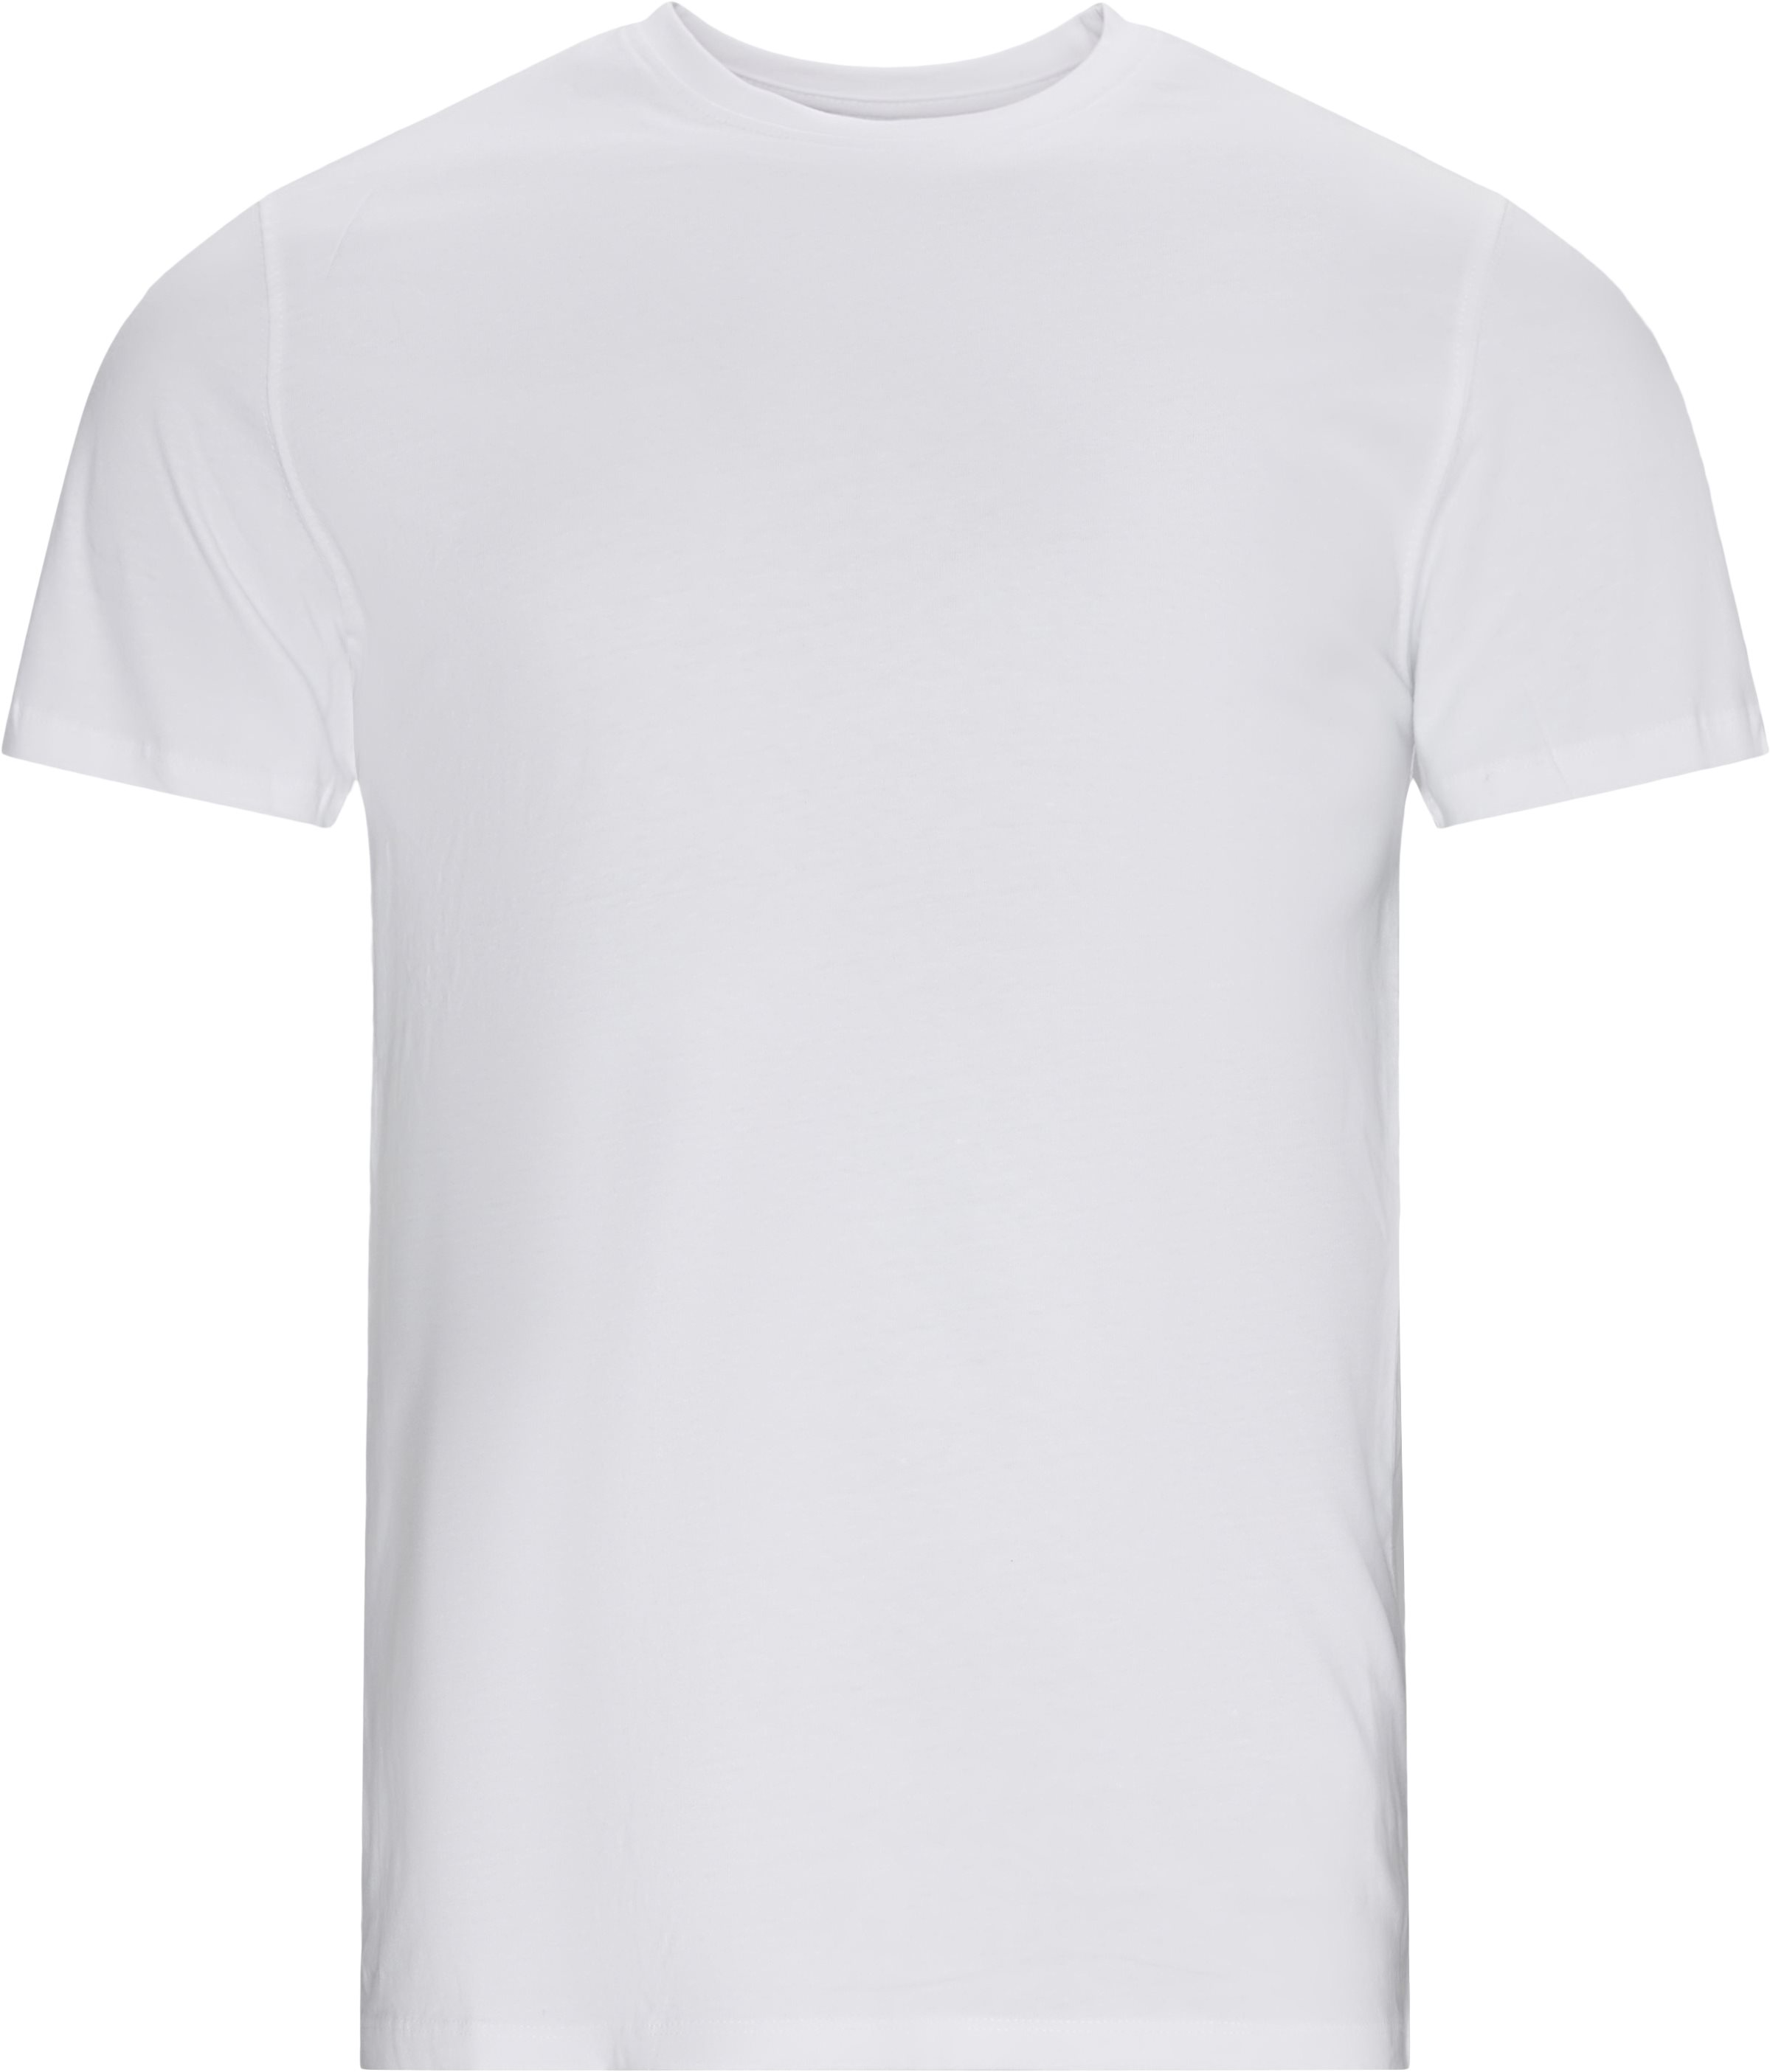 Brandon Crew Neck Tee - T-shirts - Regular - Hvid